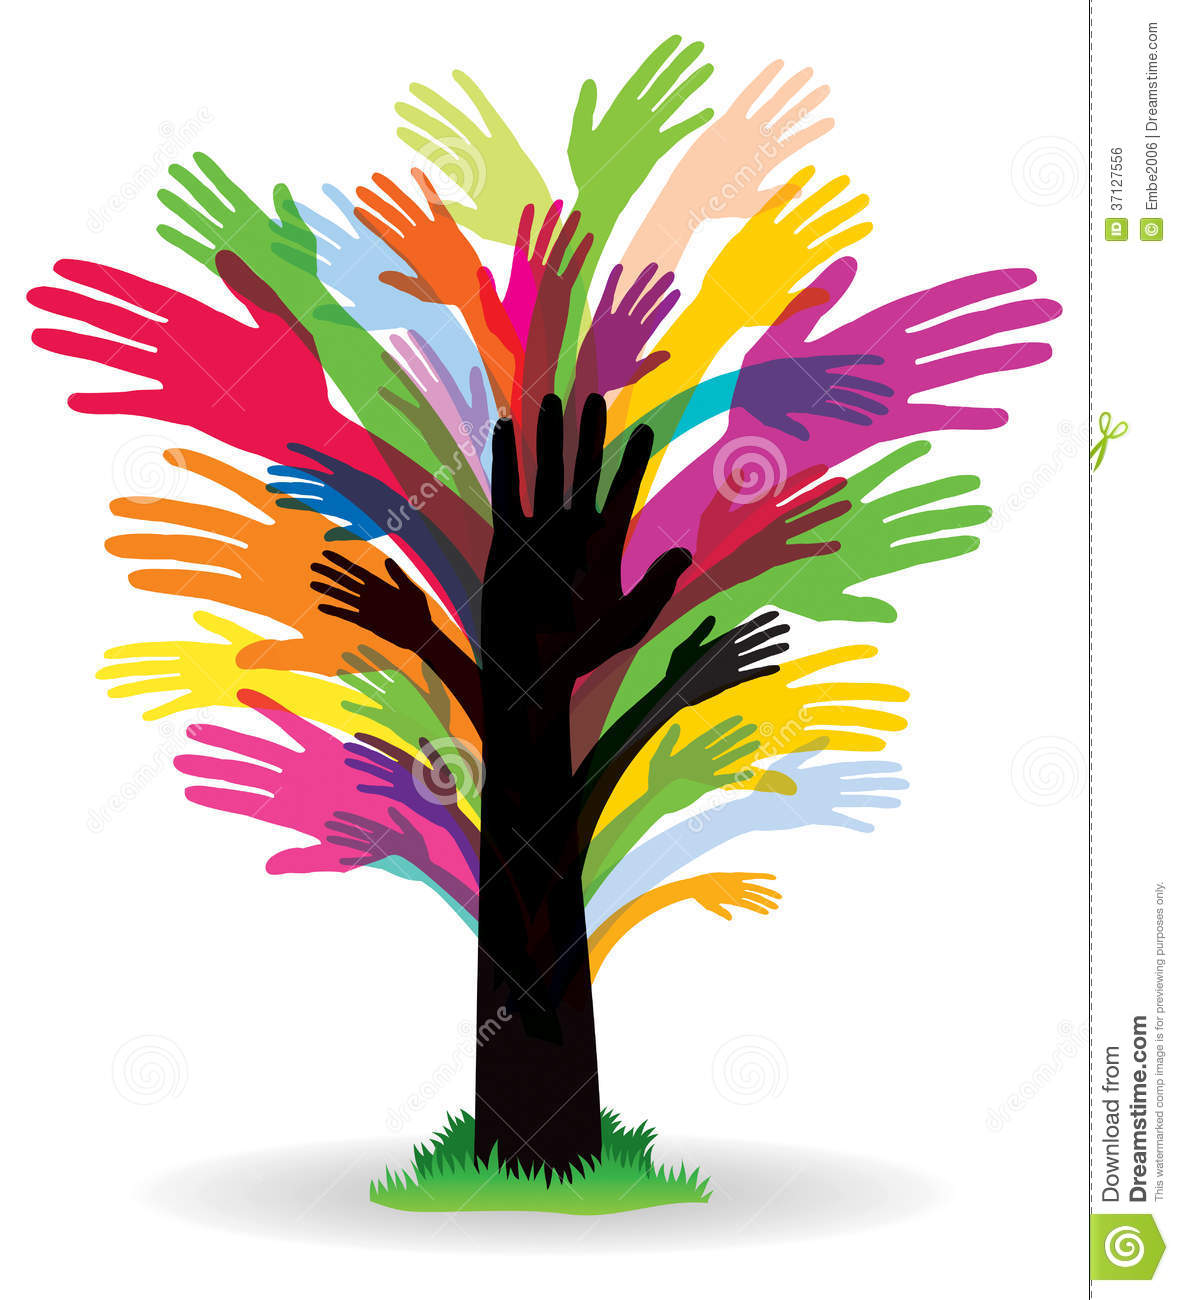 Colourful Hand Tree Stock Vector Illustration Of Image 37127556